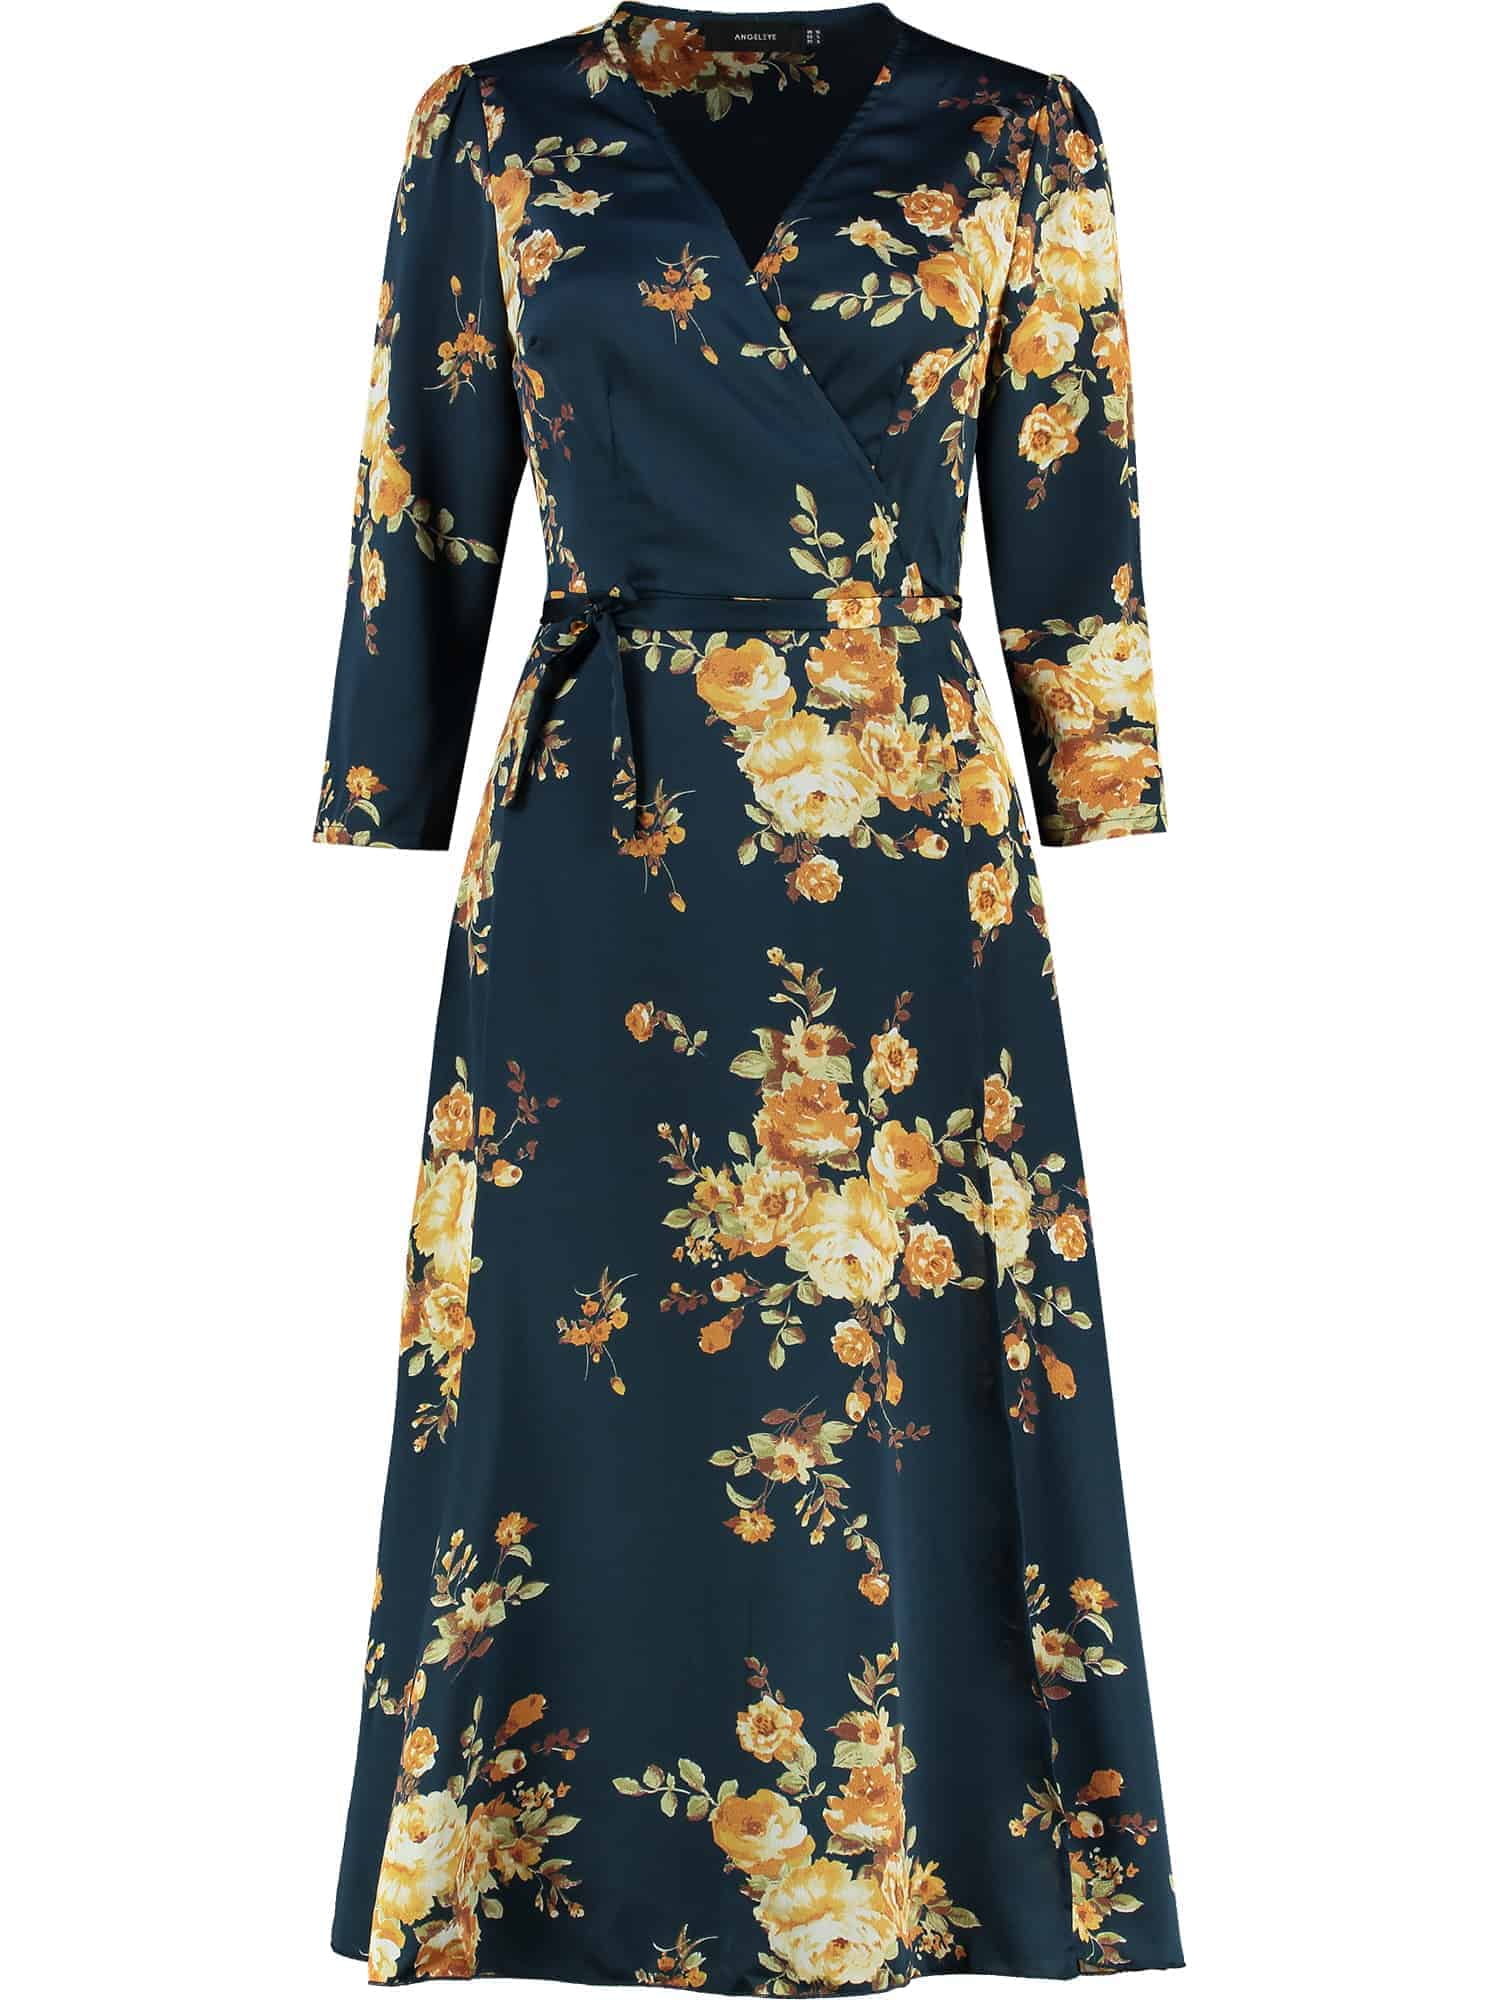 Blue-and-Gold-Floral-Dress_1